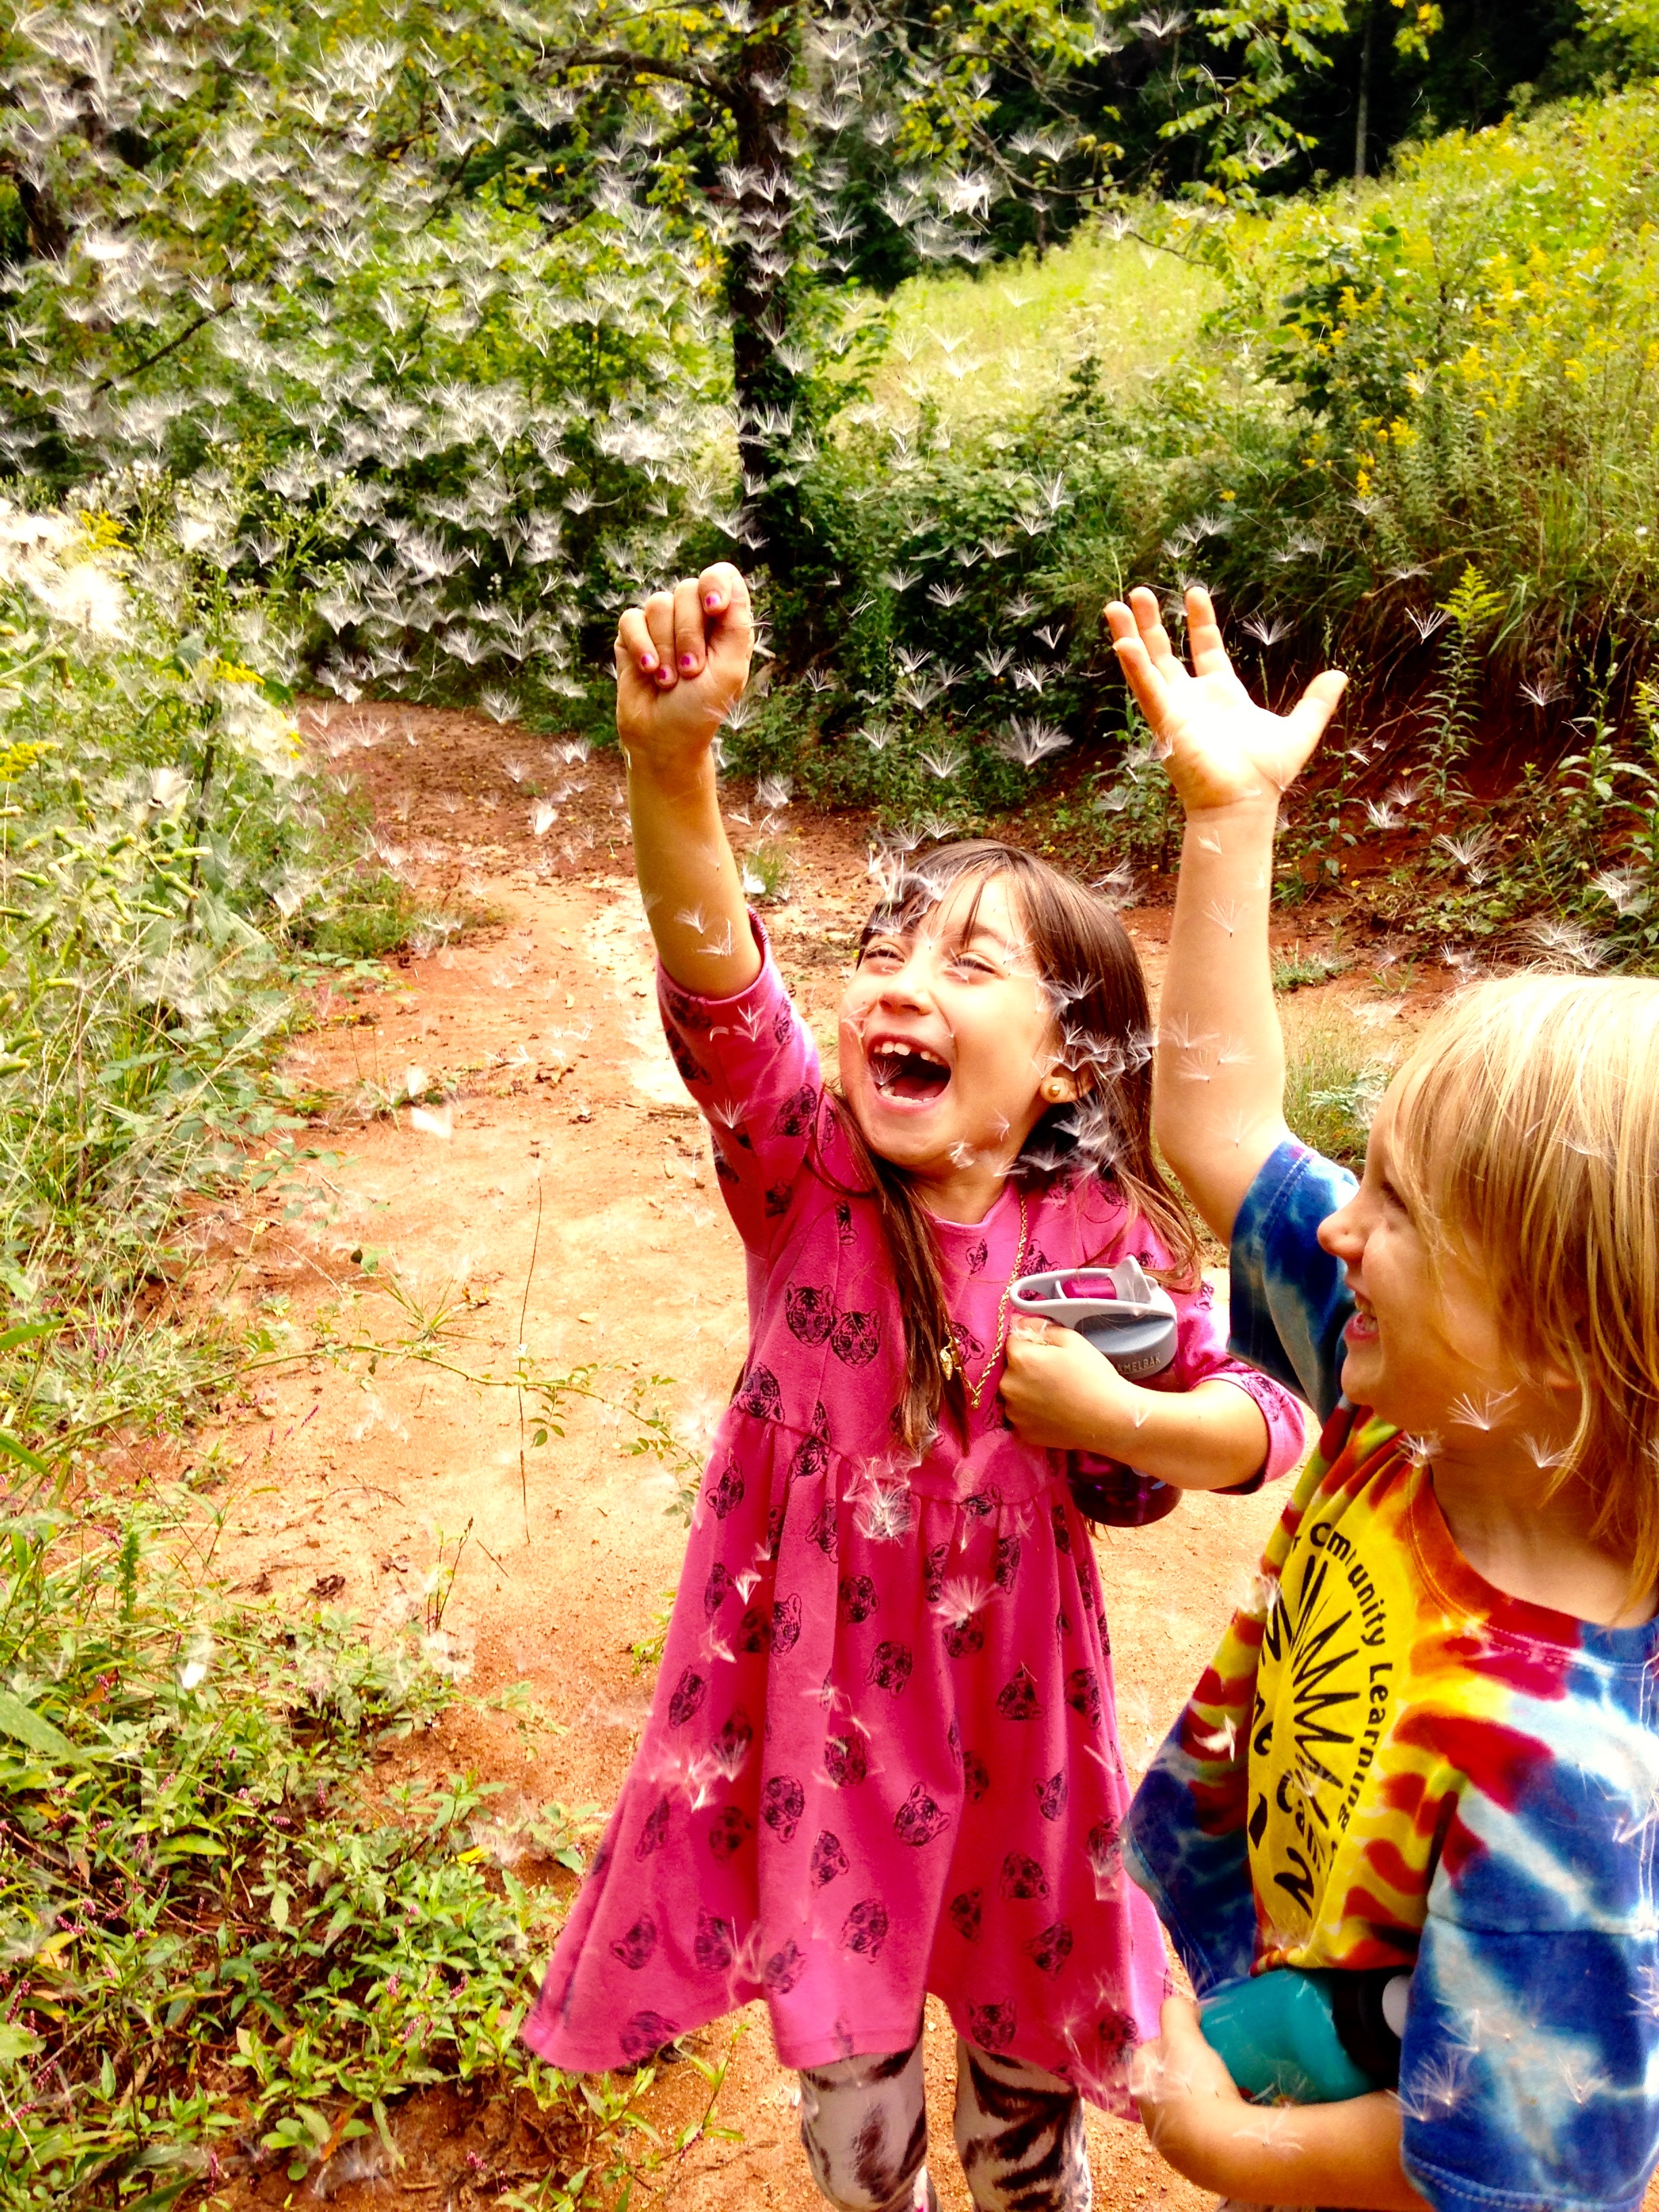 The 'out-breath' of outdoor play- chasing seeds carried far and wide by the breeze.